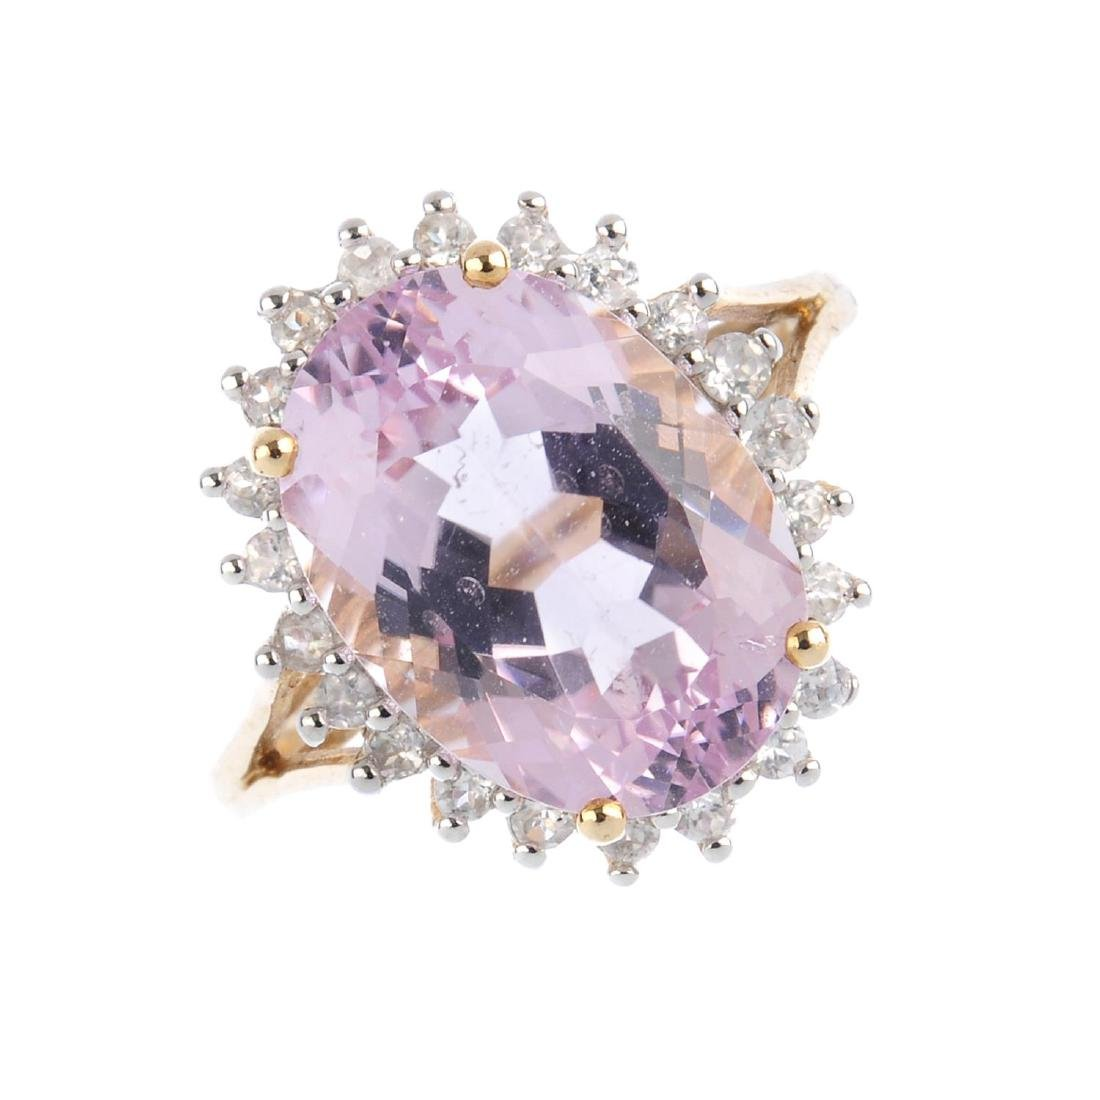 A 9ct gold kunzite and diamond ring. The oval-shape